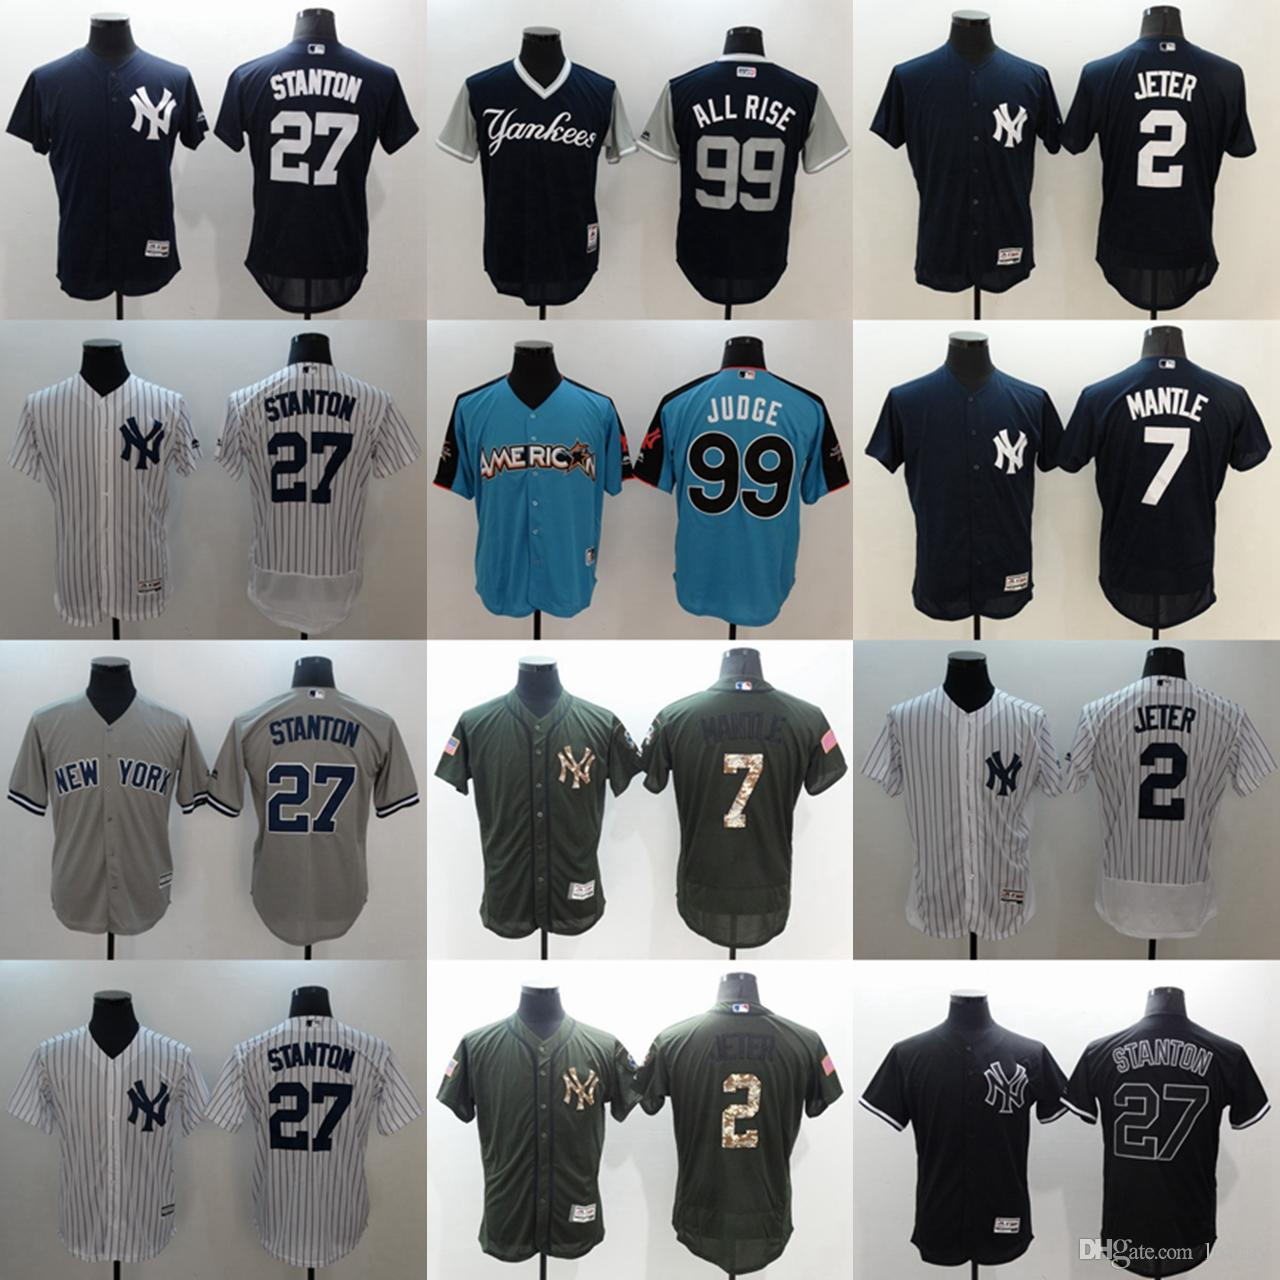 low priced 23a1a 20bec CUSTOM New York Yankees 99 Aaron Judge Mens Women Youth Customized Majestic  Stitched Baseball Jerseys Personal name Person number